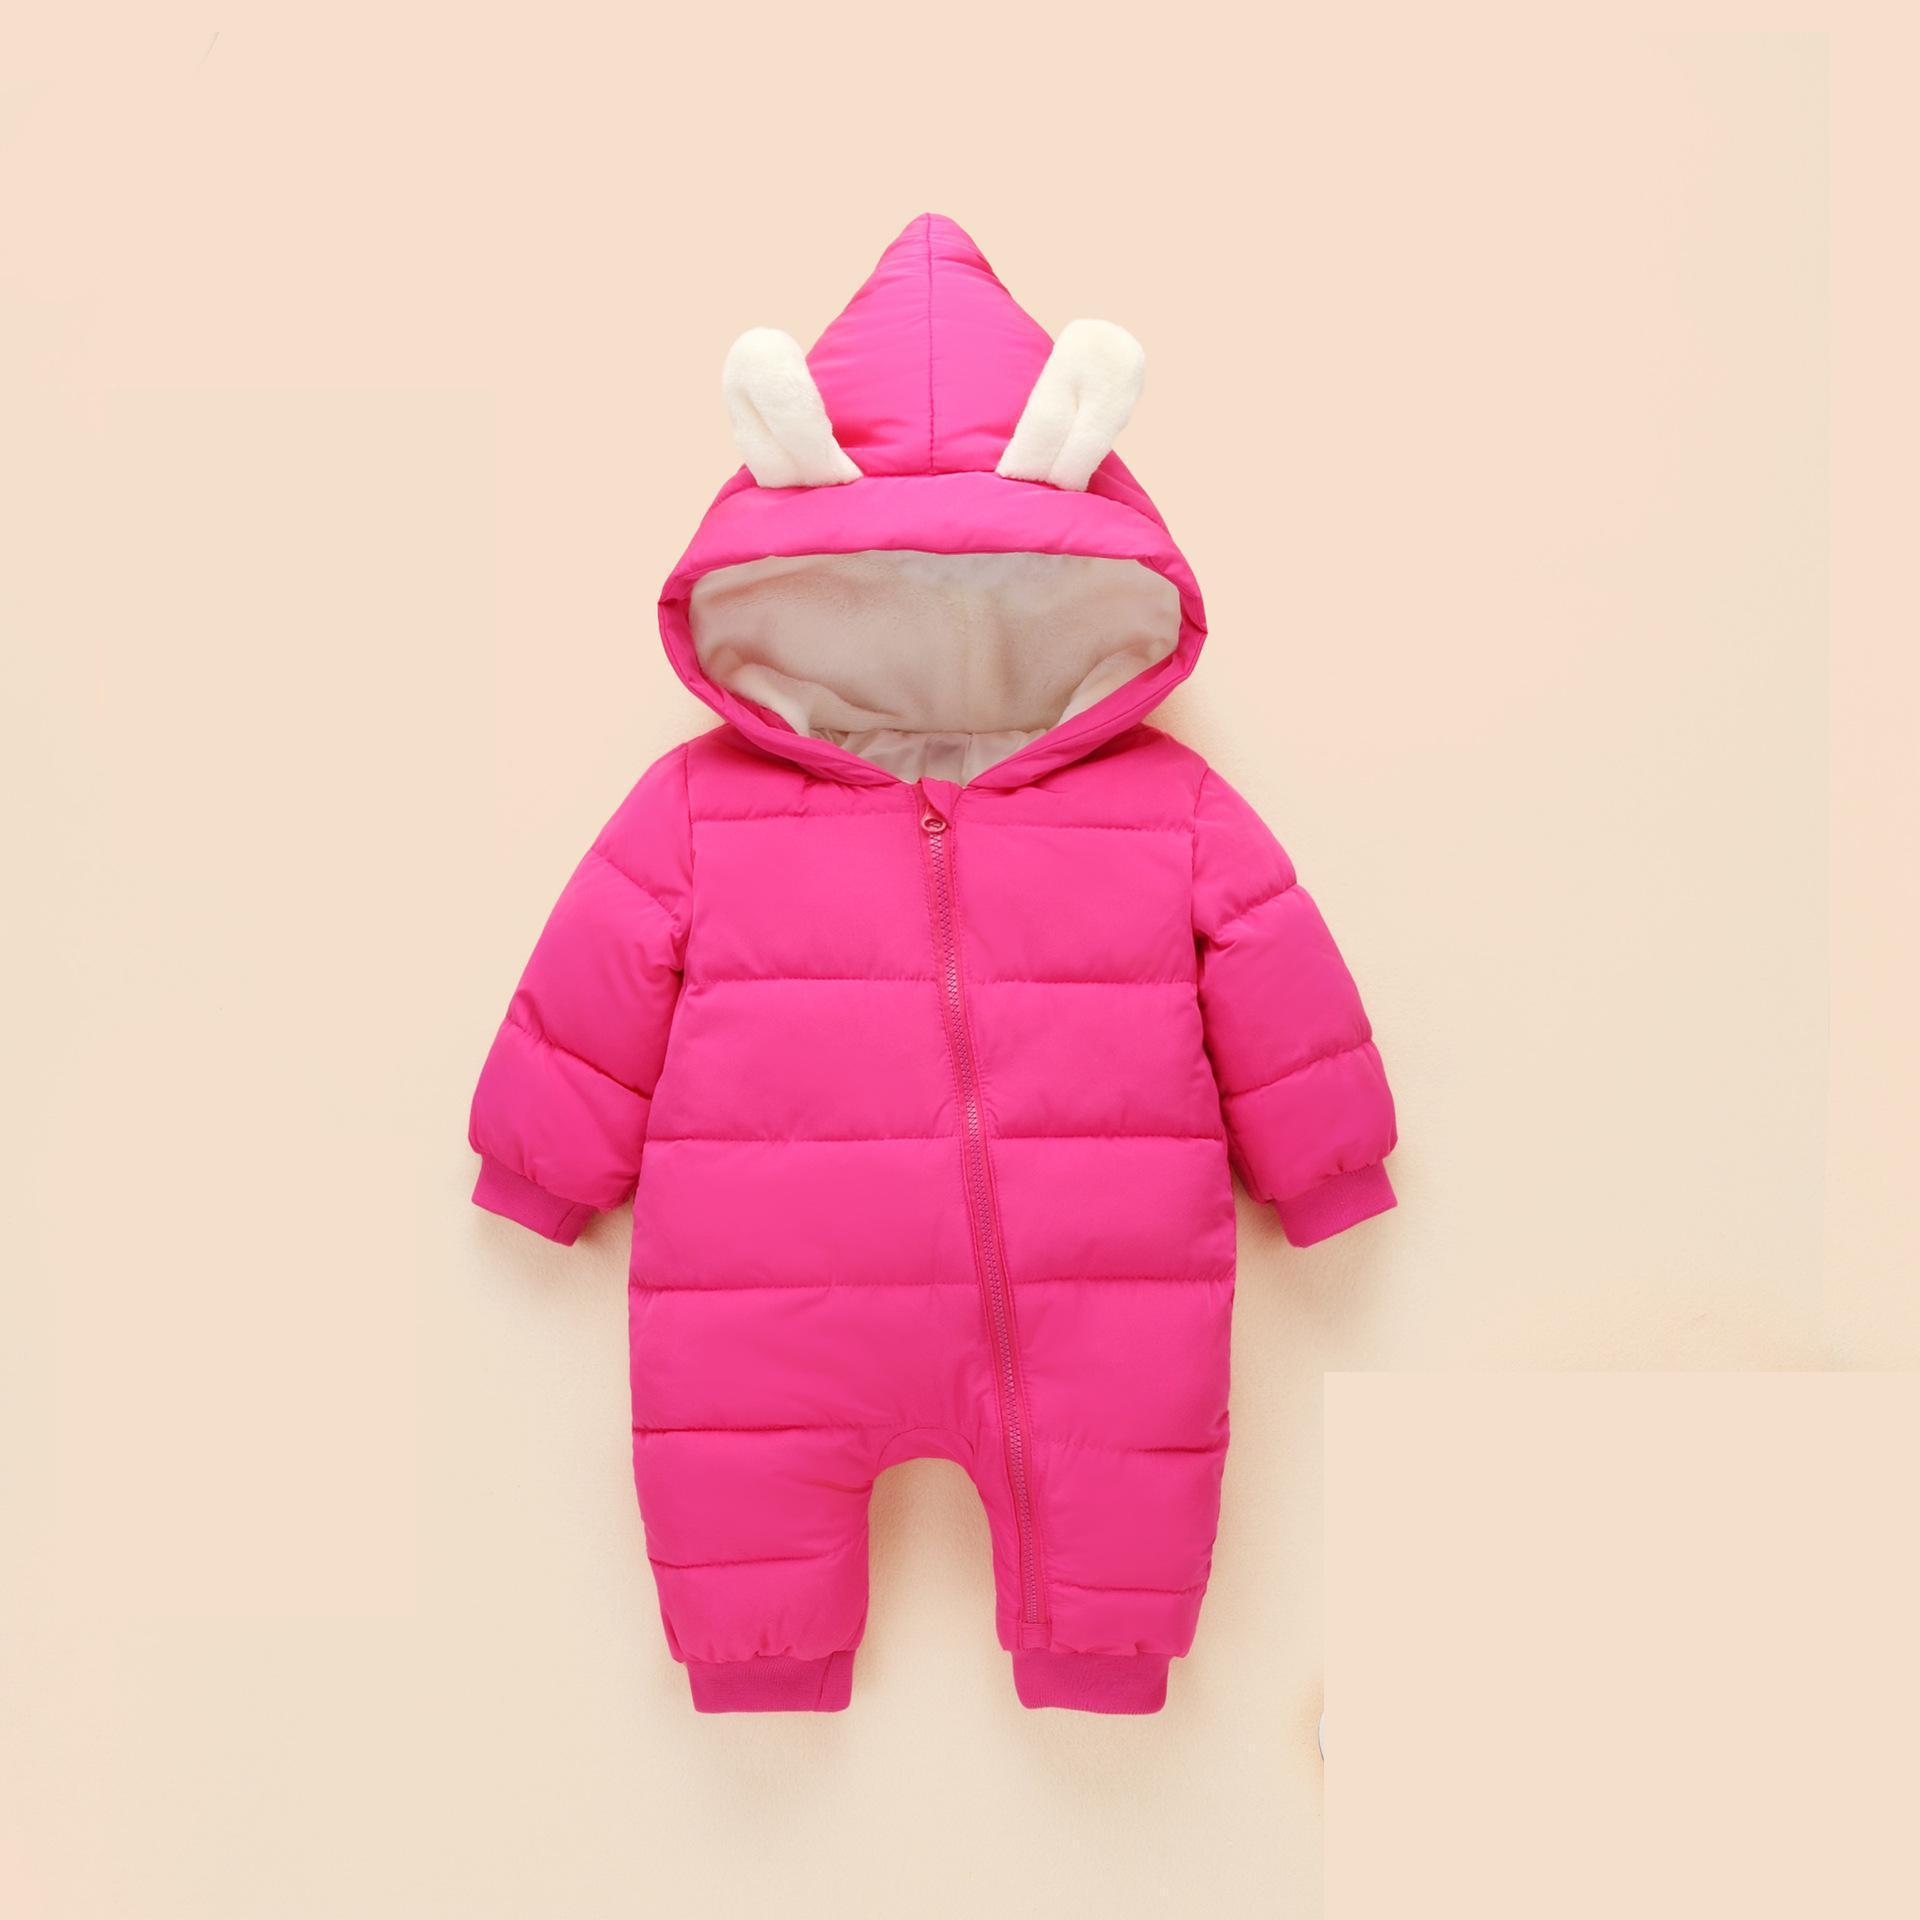 2017 New Infant Clothing Cotton Newborn Baby Boys Girls Winter